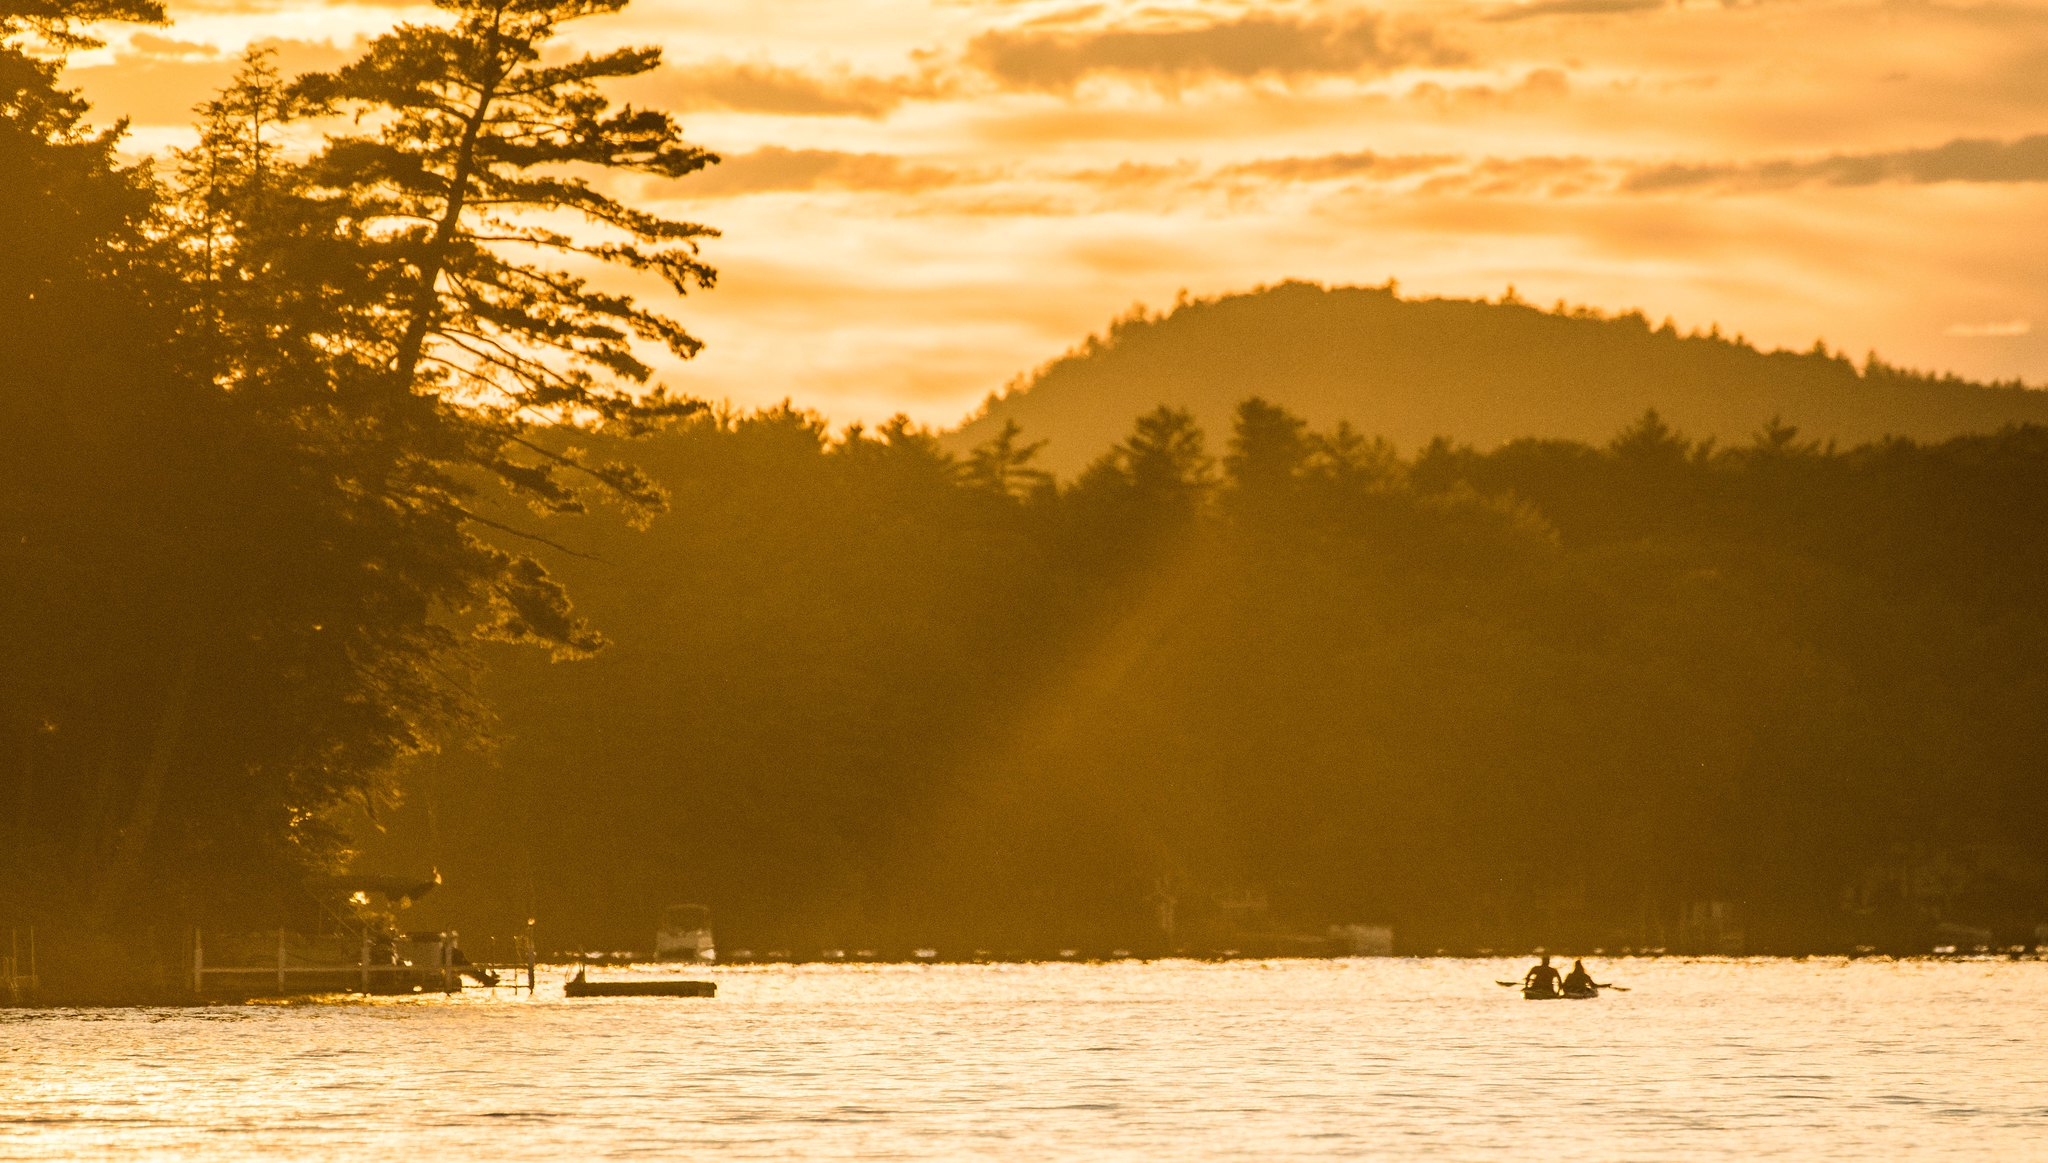 Scenic image of Lovell Lake, New Hampshire